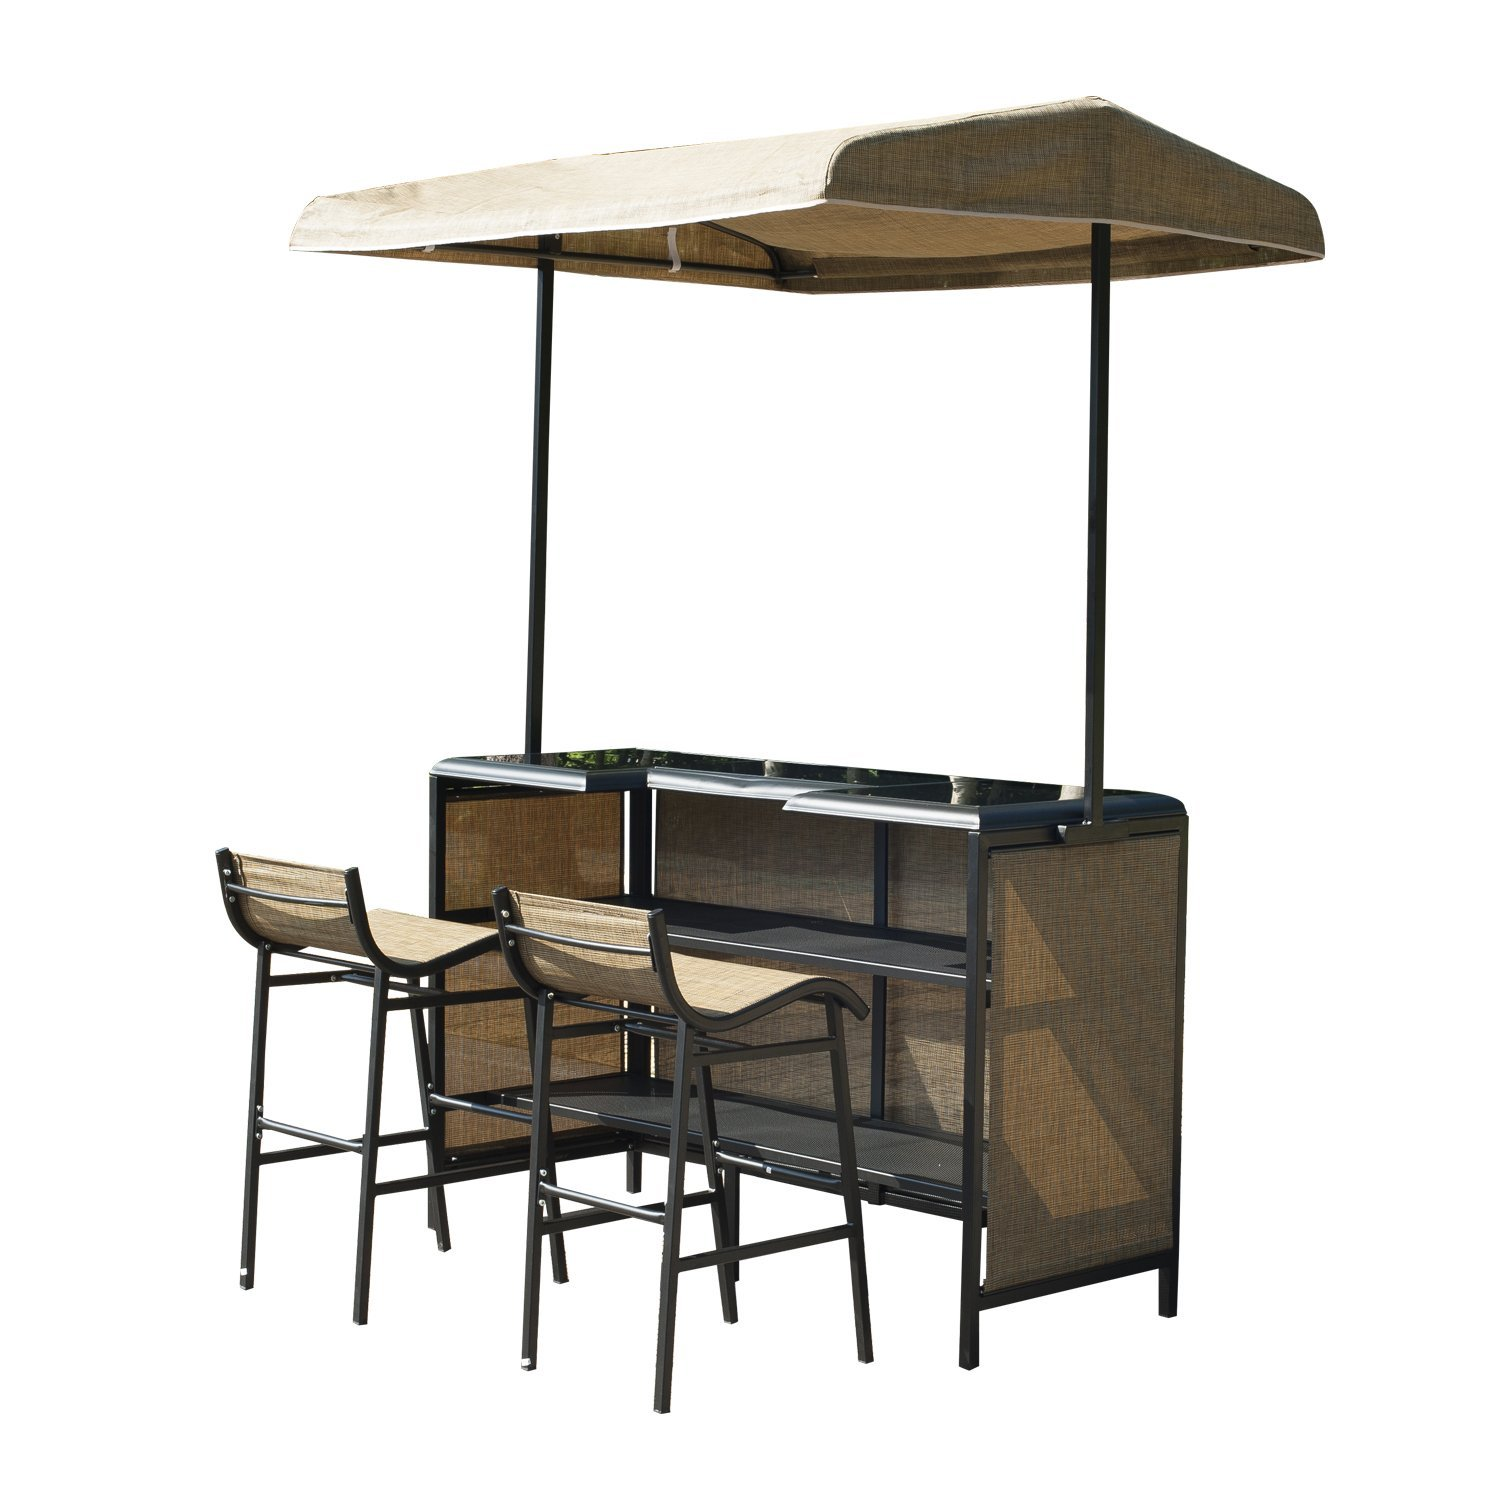 Picture of: Outsunny 3 Piece Outdoor Bar Table And Stool Set With Canopy Garden Patio Furniture Beige Patio Furniture Aosom Canada